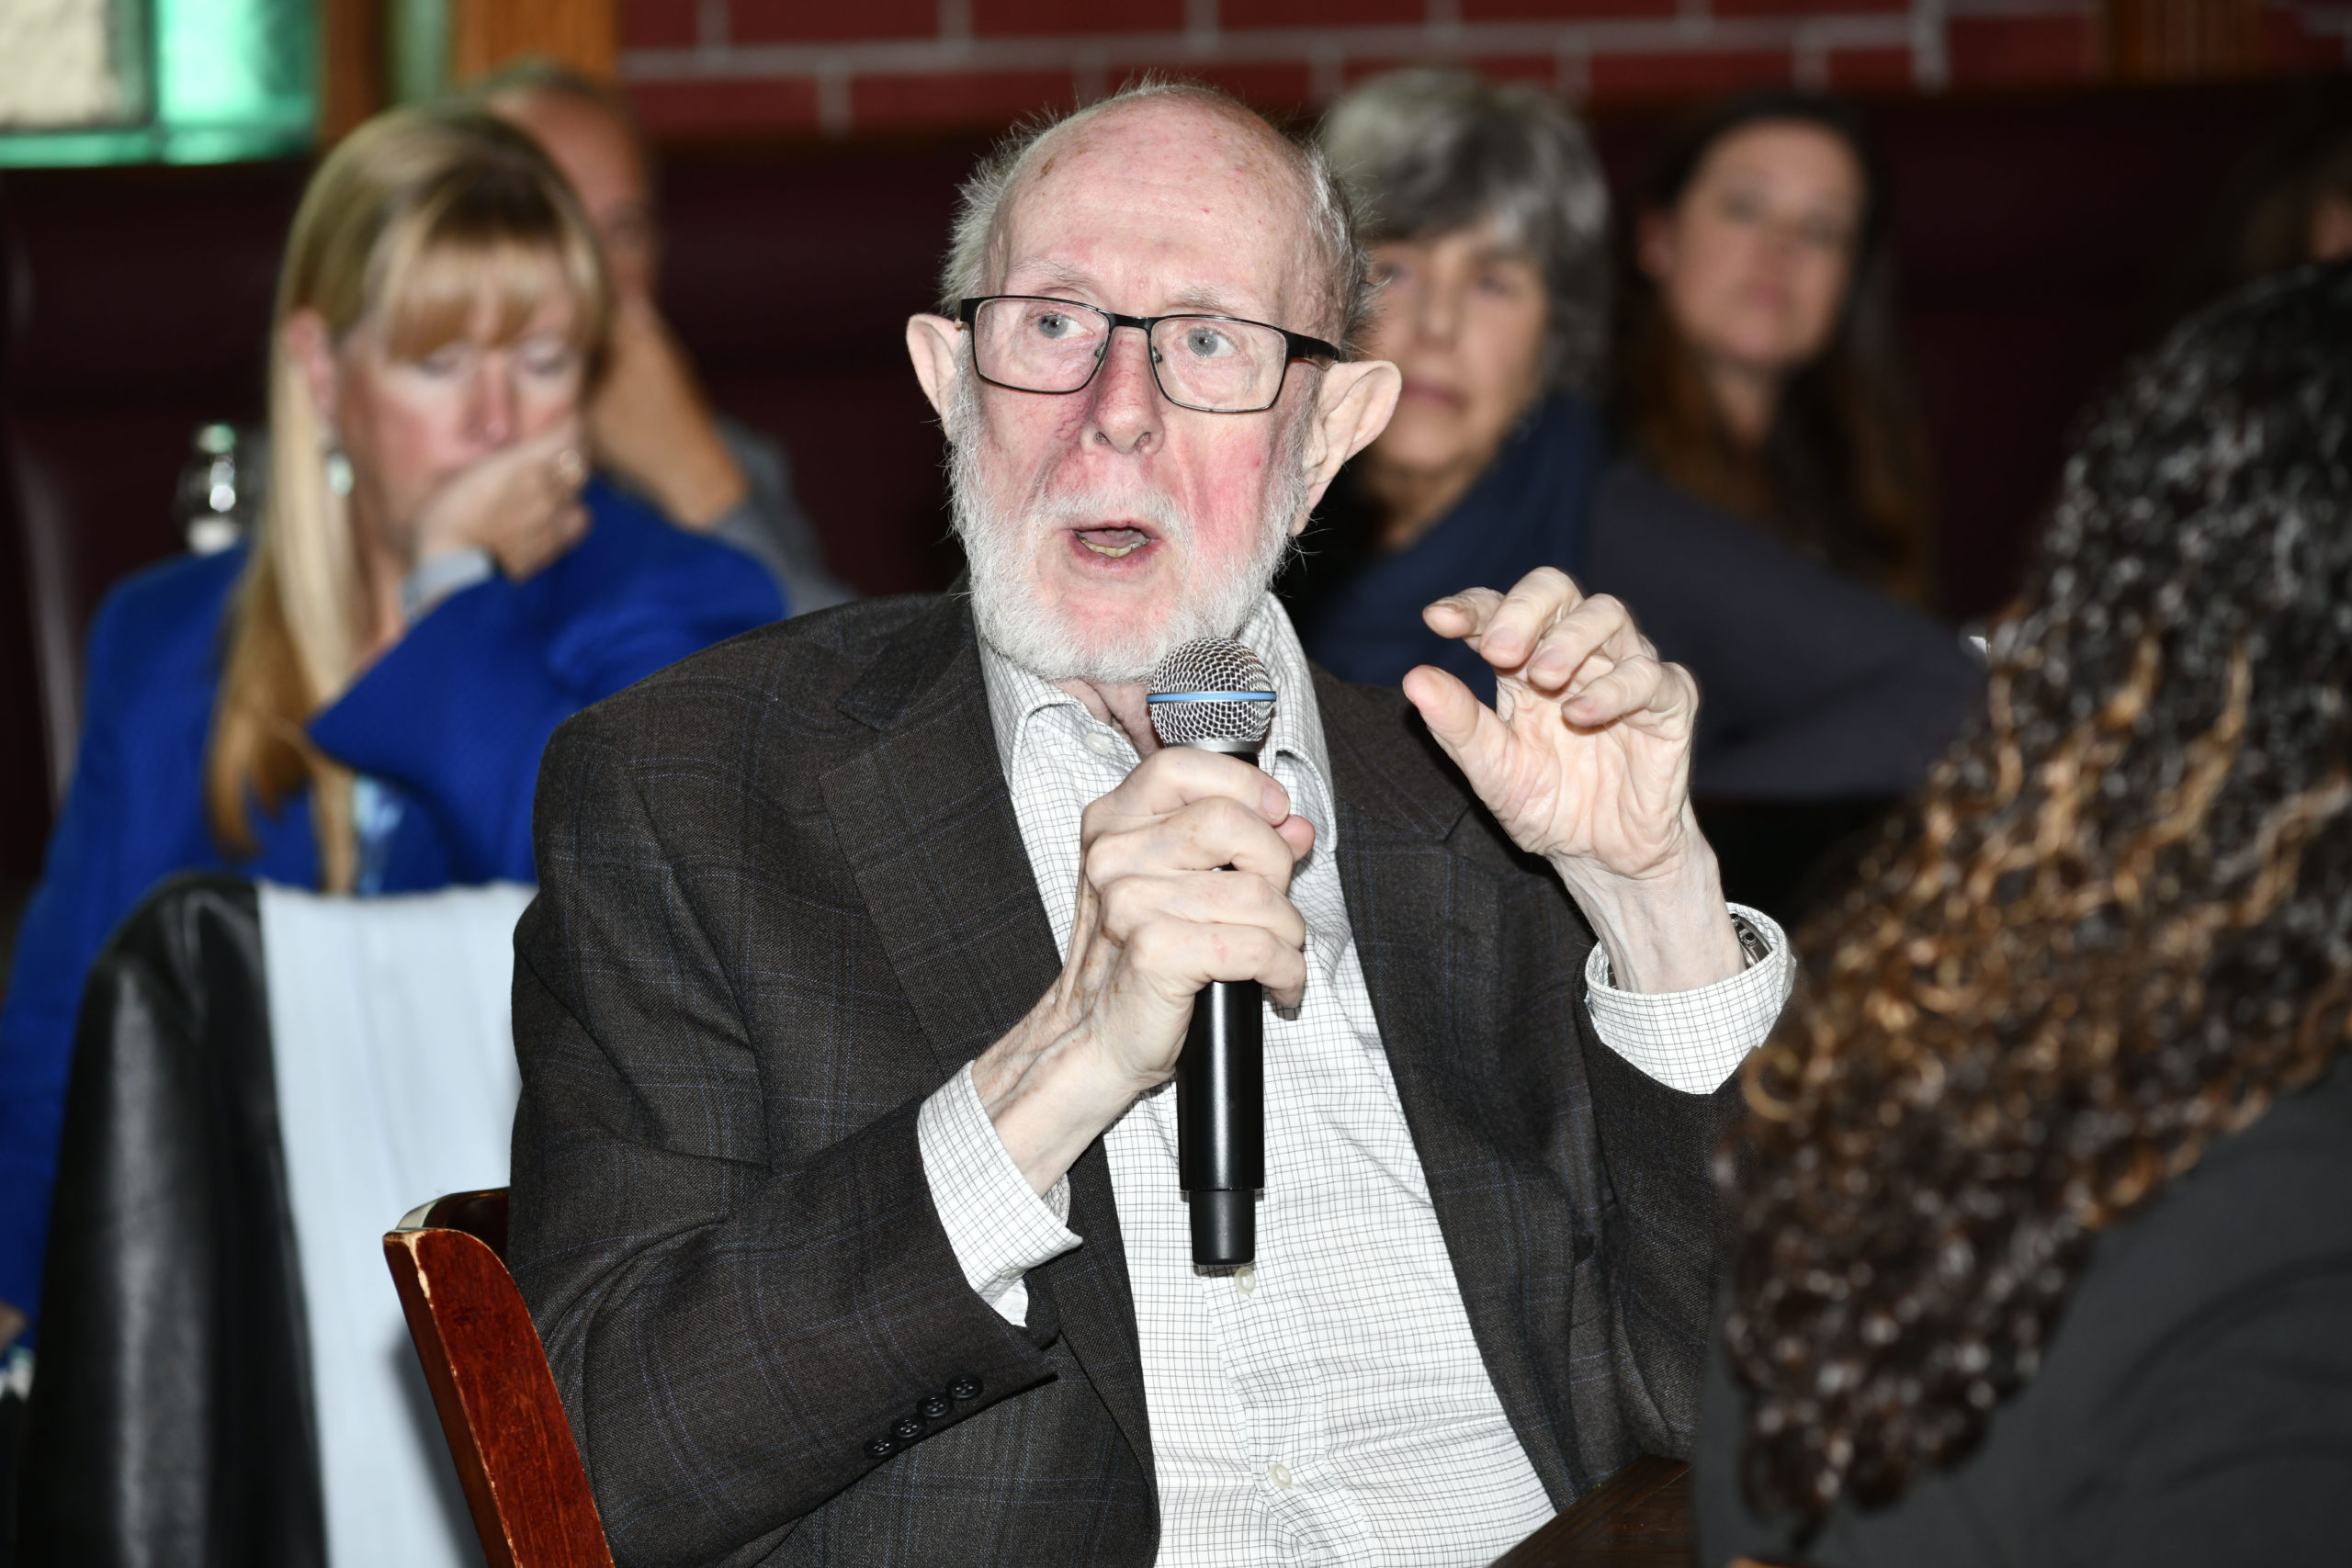 Hank Beck at Press Sessions event in 2019.  PRESS FILE